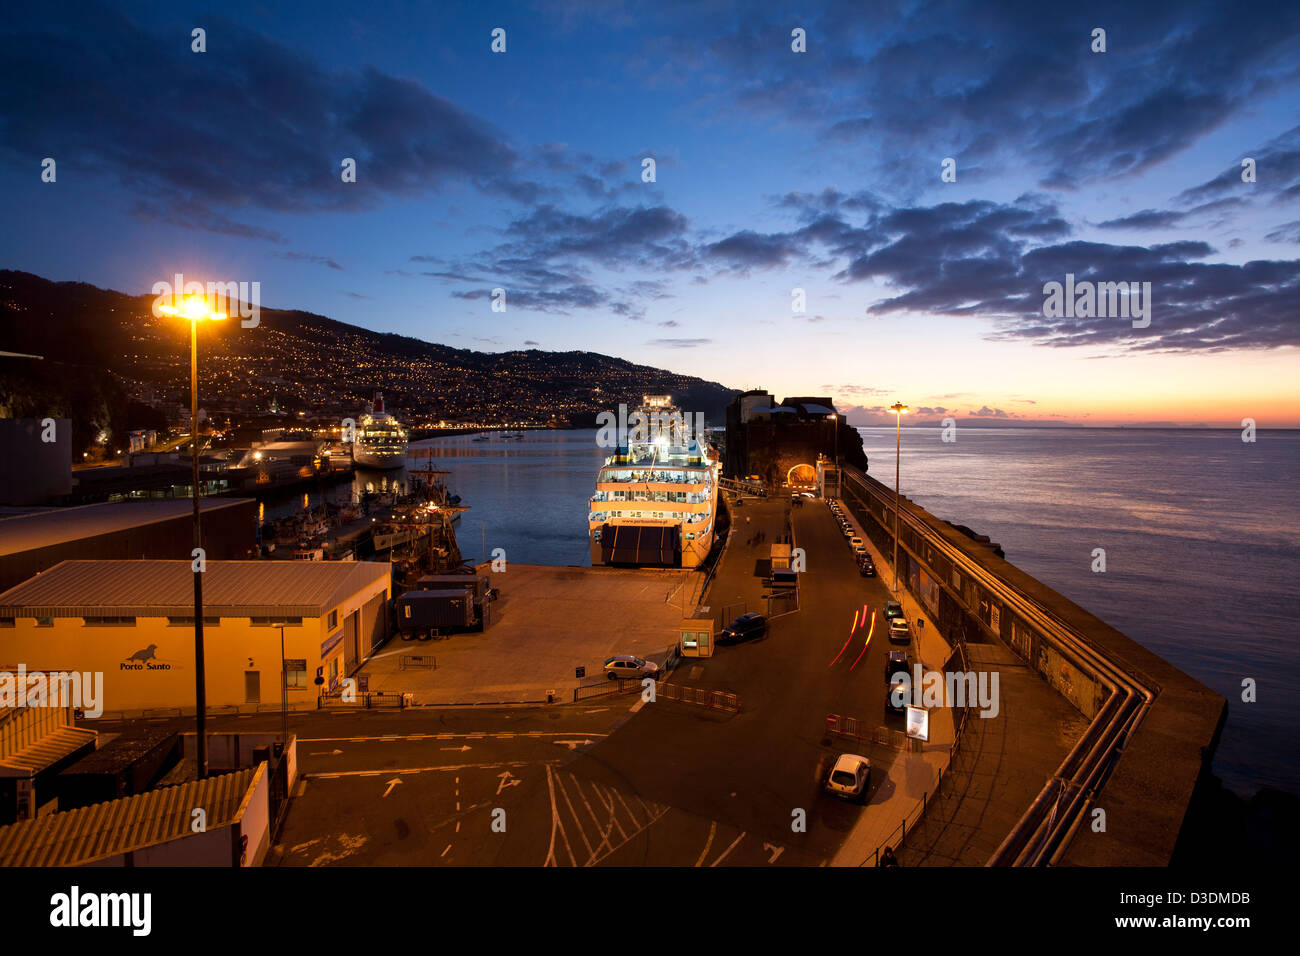 Funchal harbour at dawn with the Porto Santo ferry just departing. - Stock Image